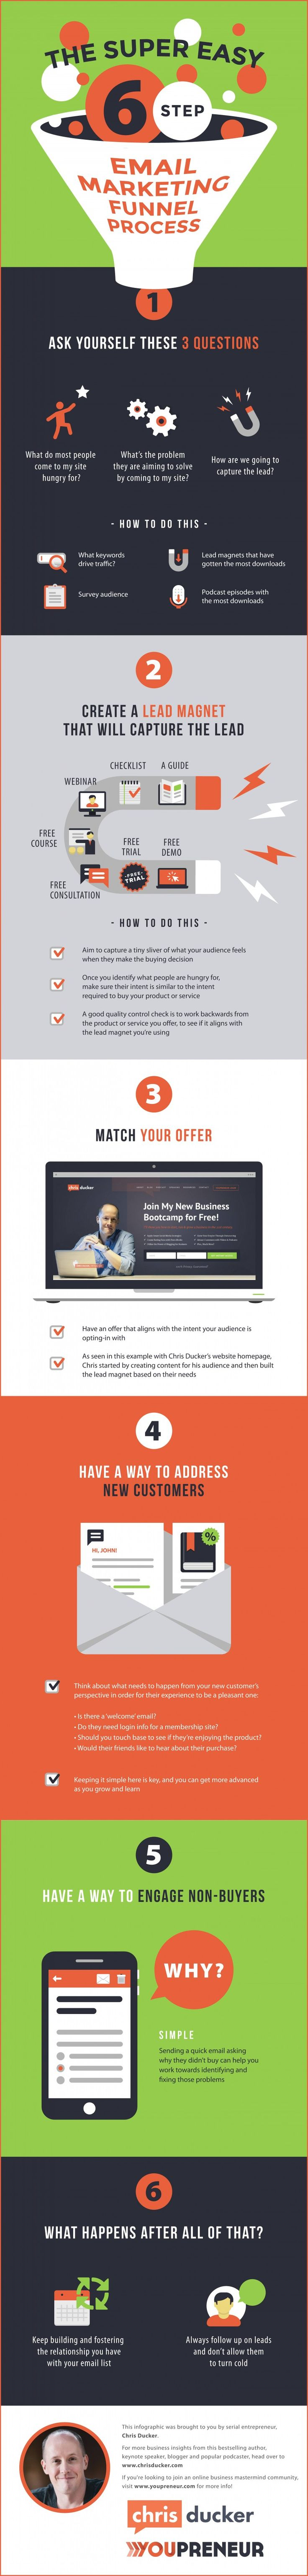 The Super Easy 6-Step Email Marketing Funnel [Infographic] - http://www.chrisducker.com/?p=81183